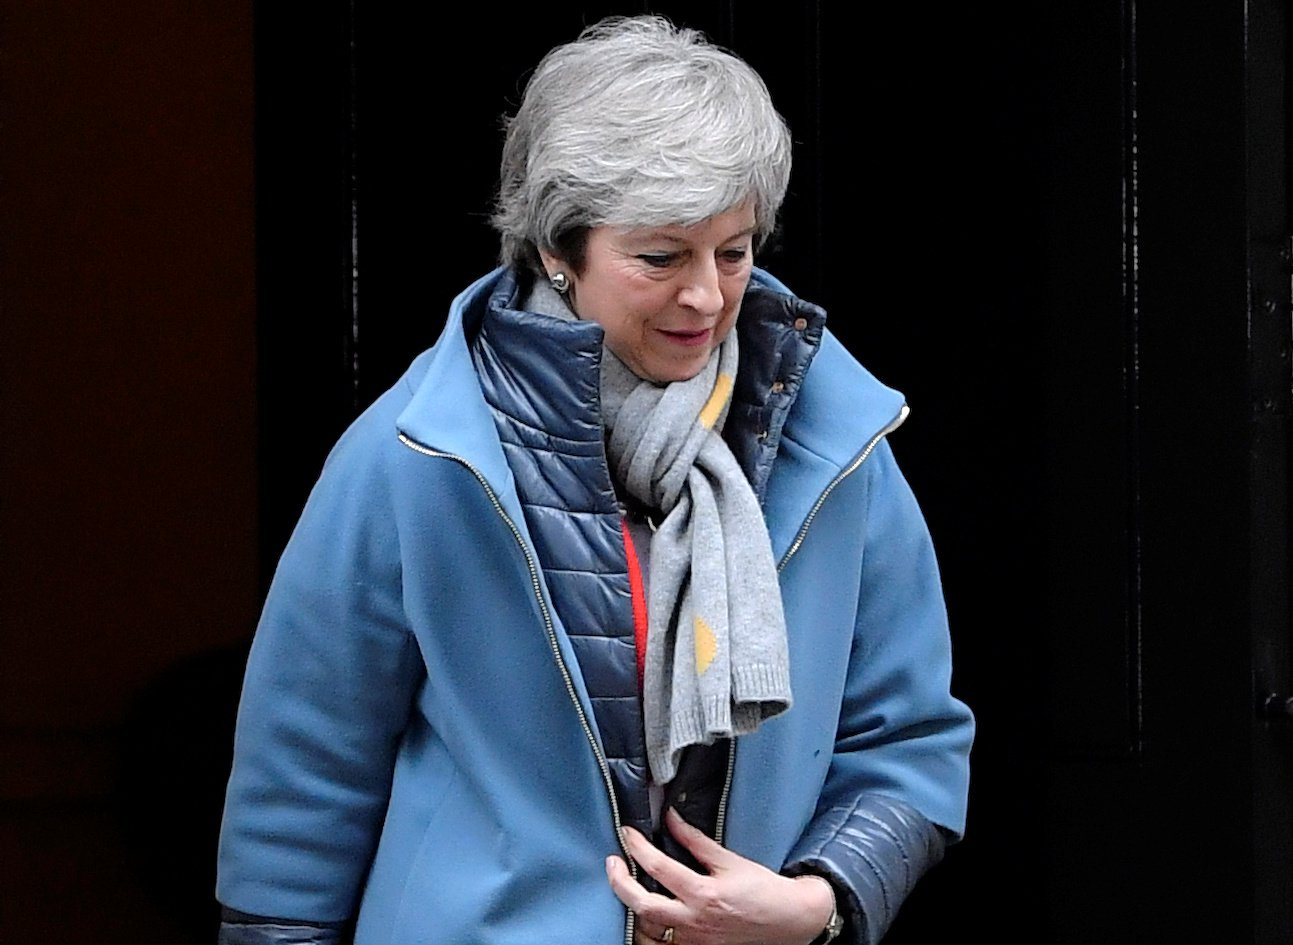 Britain's Prime Minister Theresa May is seen outside Downing Street in London, Britain, March 12, 2019. REUTERS/Toby Melville